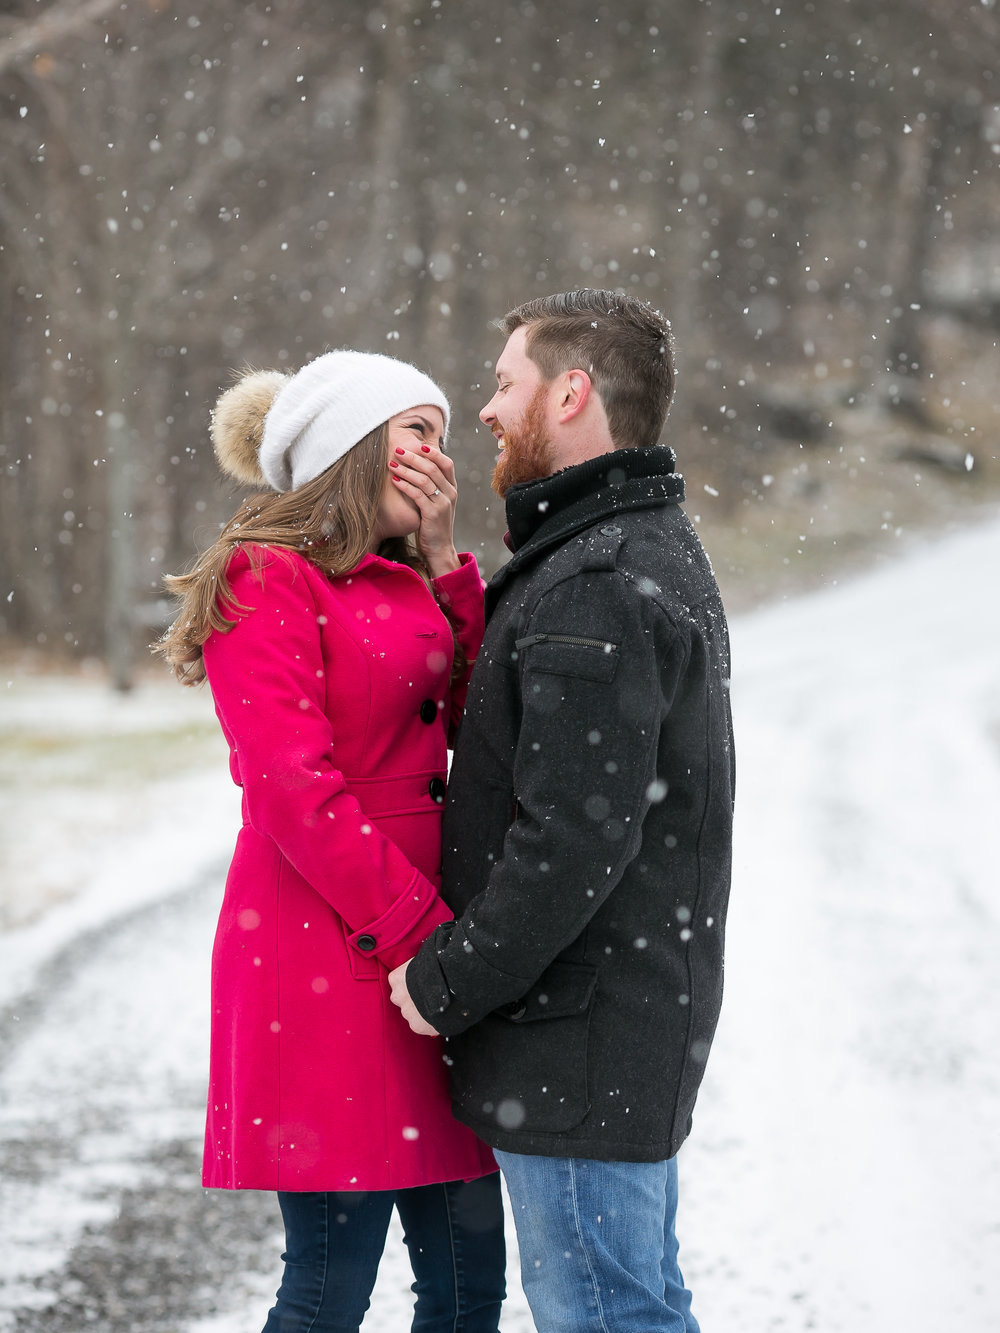 Sara-Chris-Winter-Engagement-Session-35.jpg